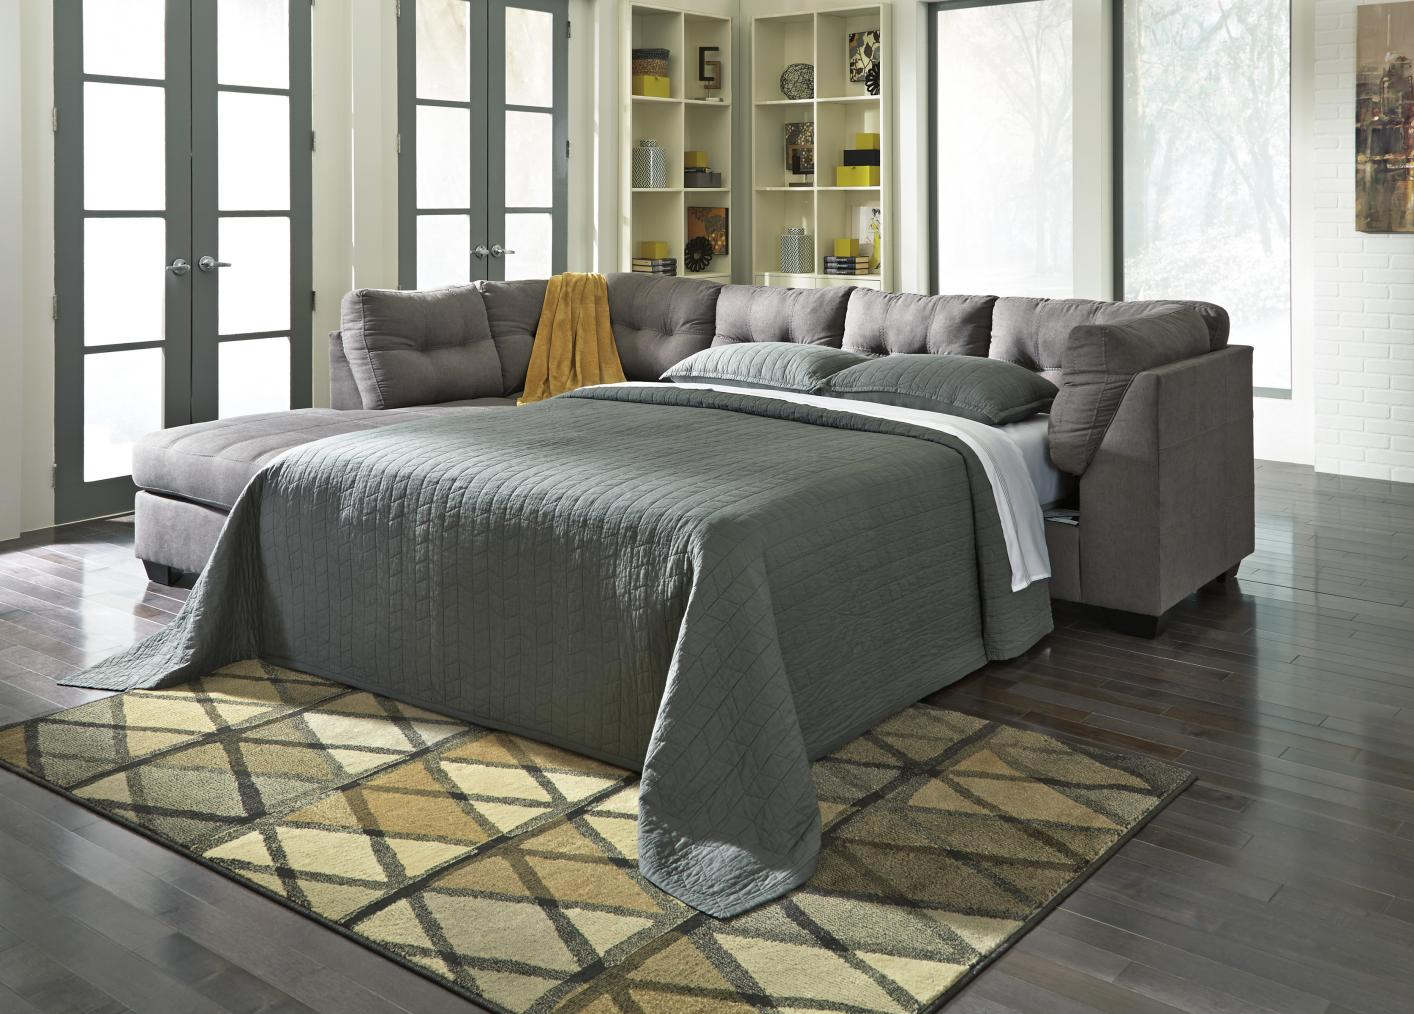 Maier Grey Fabric Sectional Sleeper Sofa Steal A Sofa Furniture